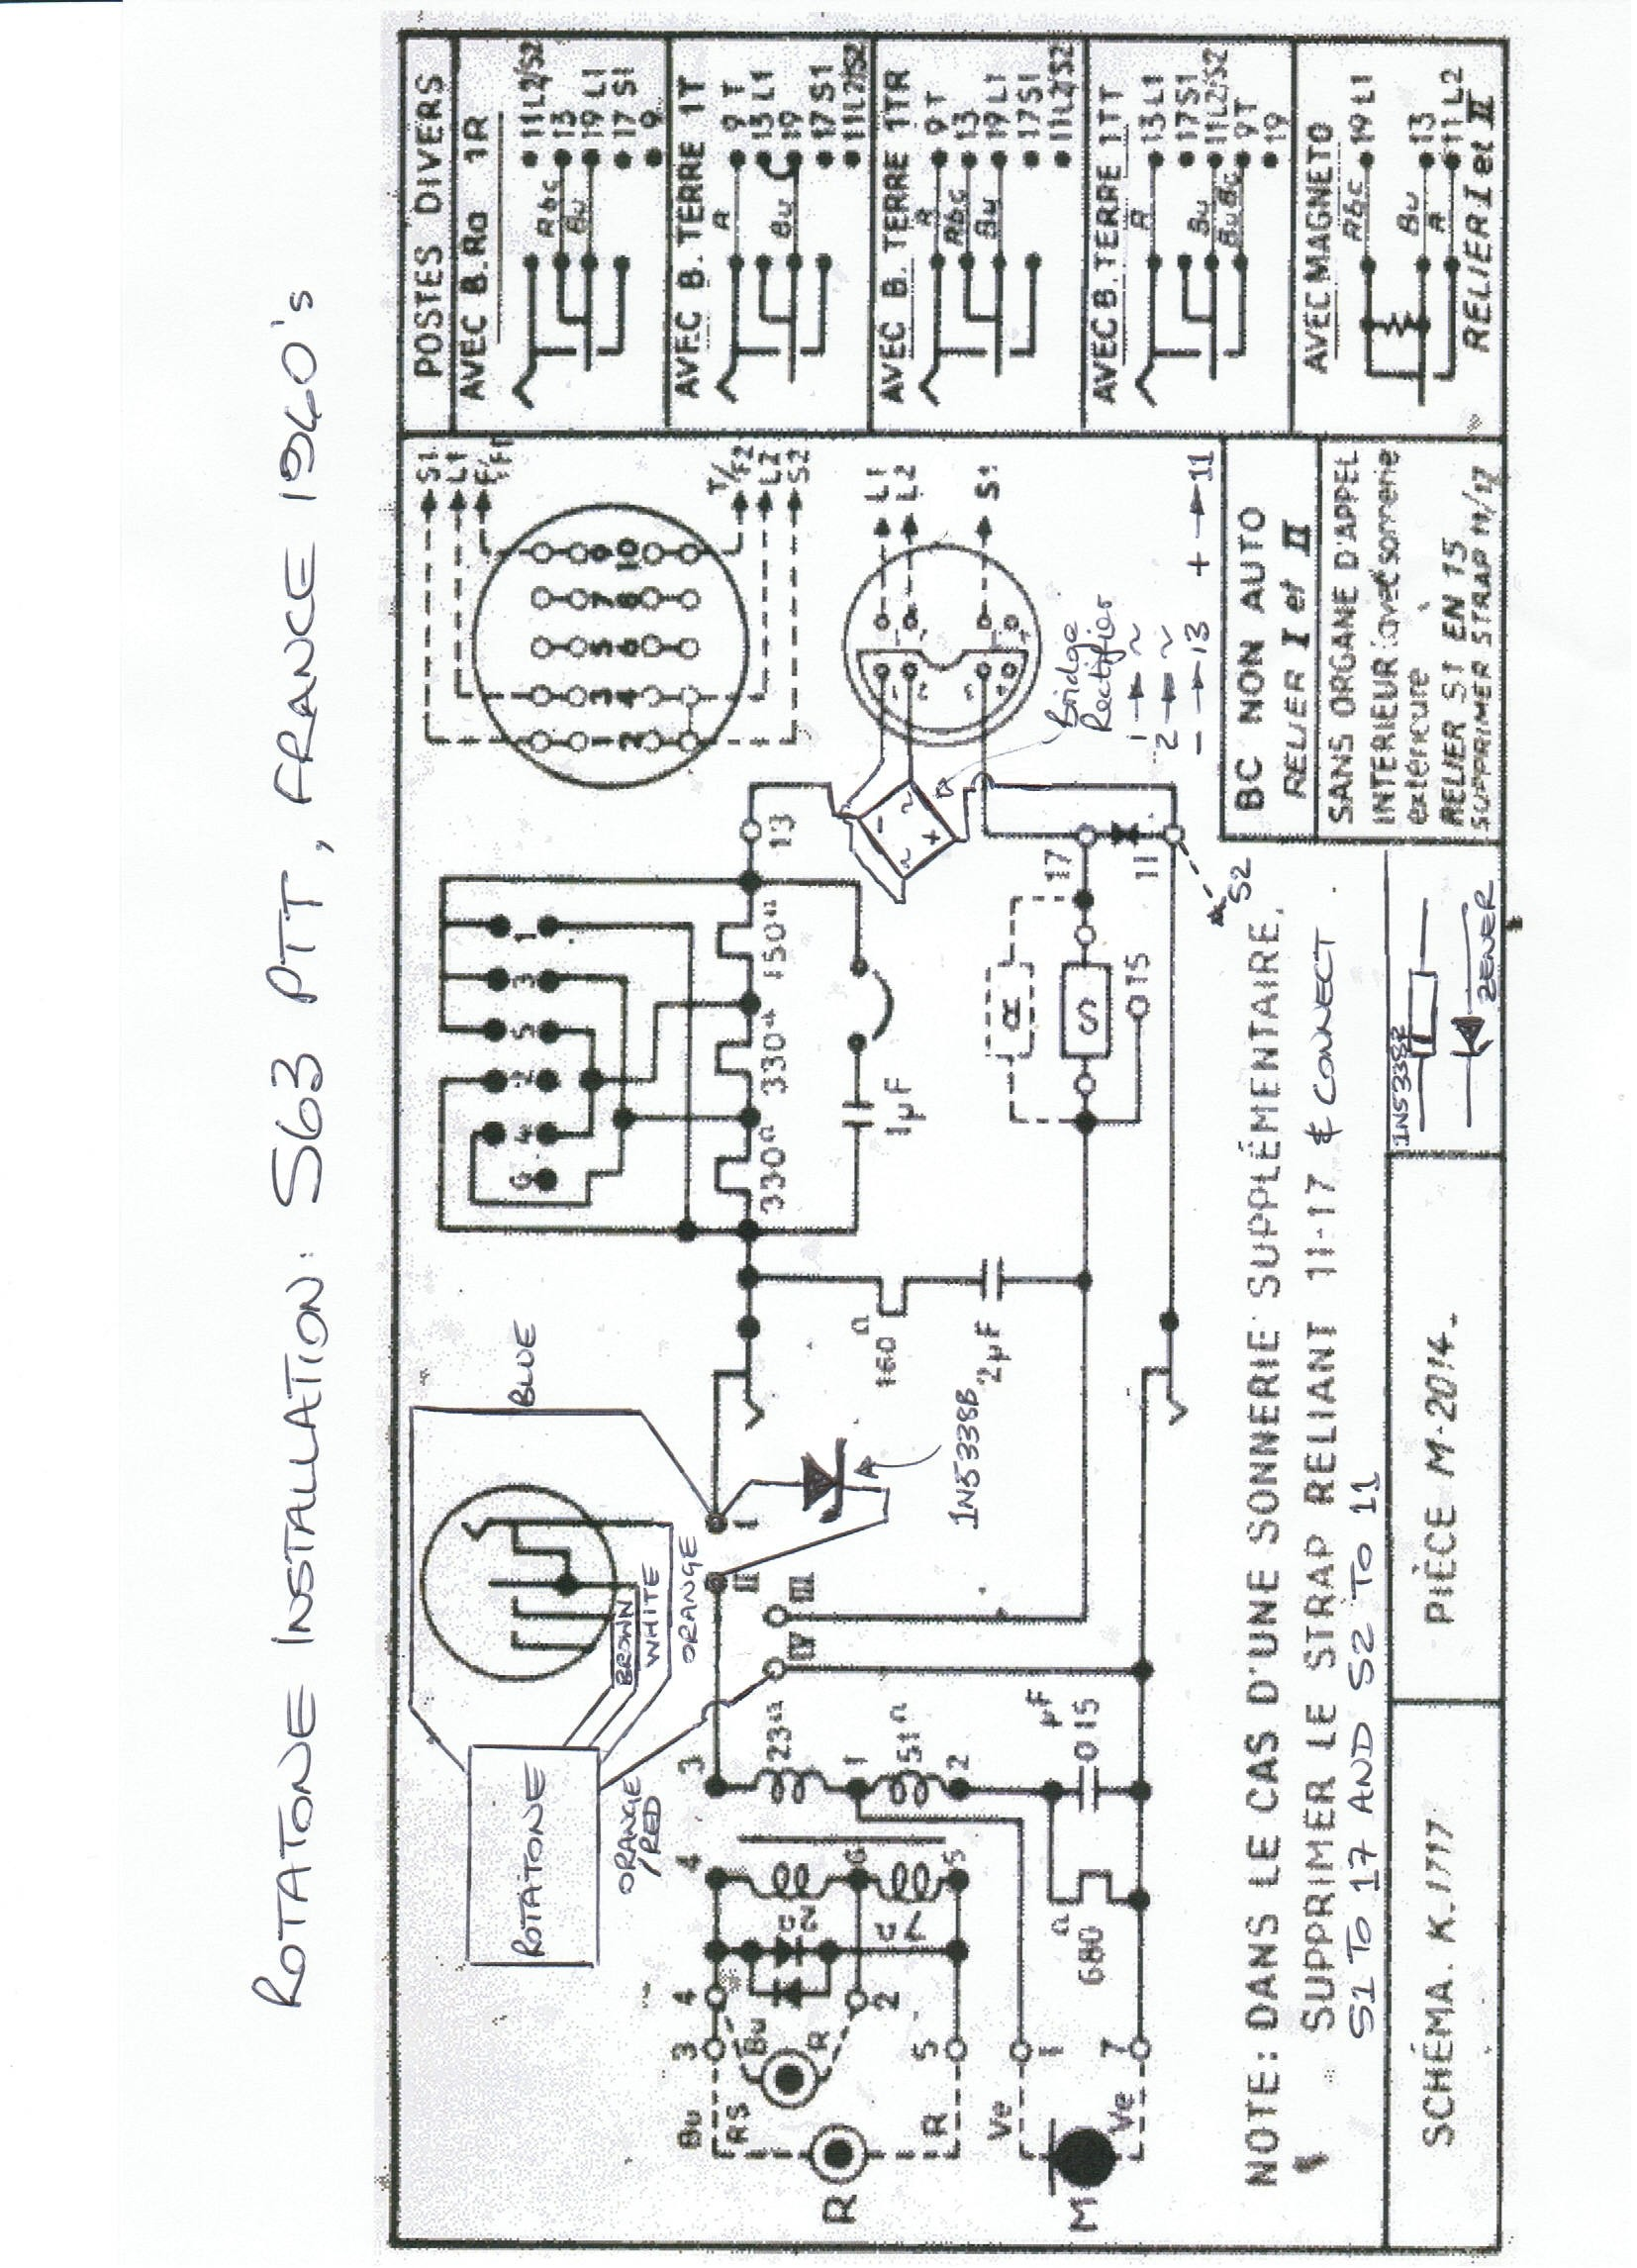 Western Electric 2500 Wiring Diagram Auto Electrical Shr 1 Series Hot Rails Oldphoneworks Antique Phone Parts All Rotatone